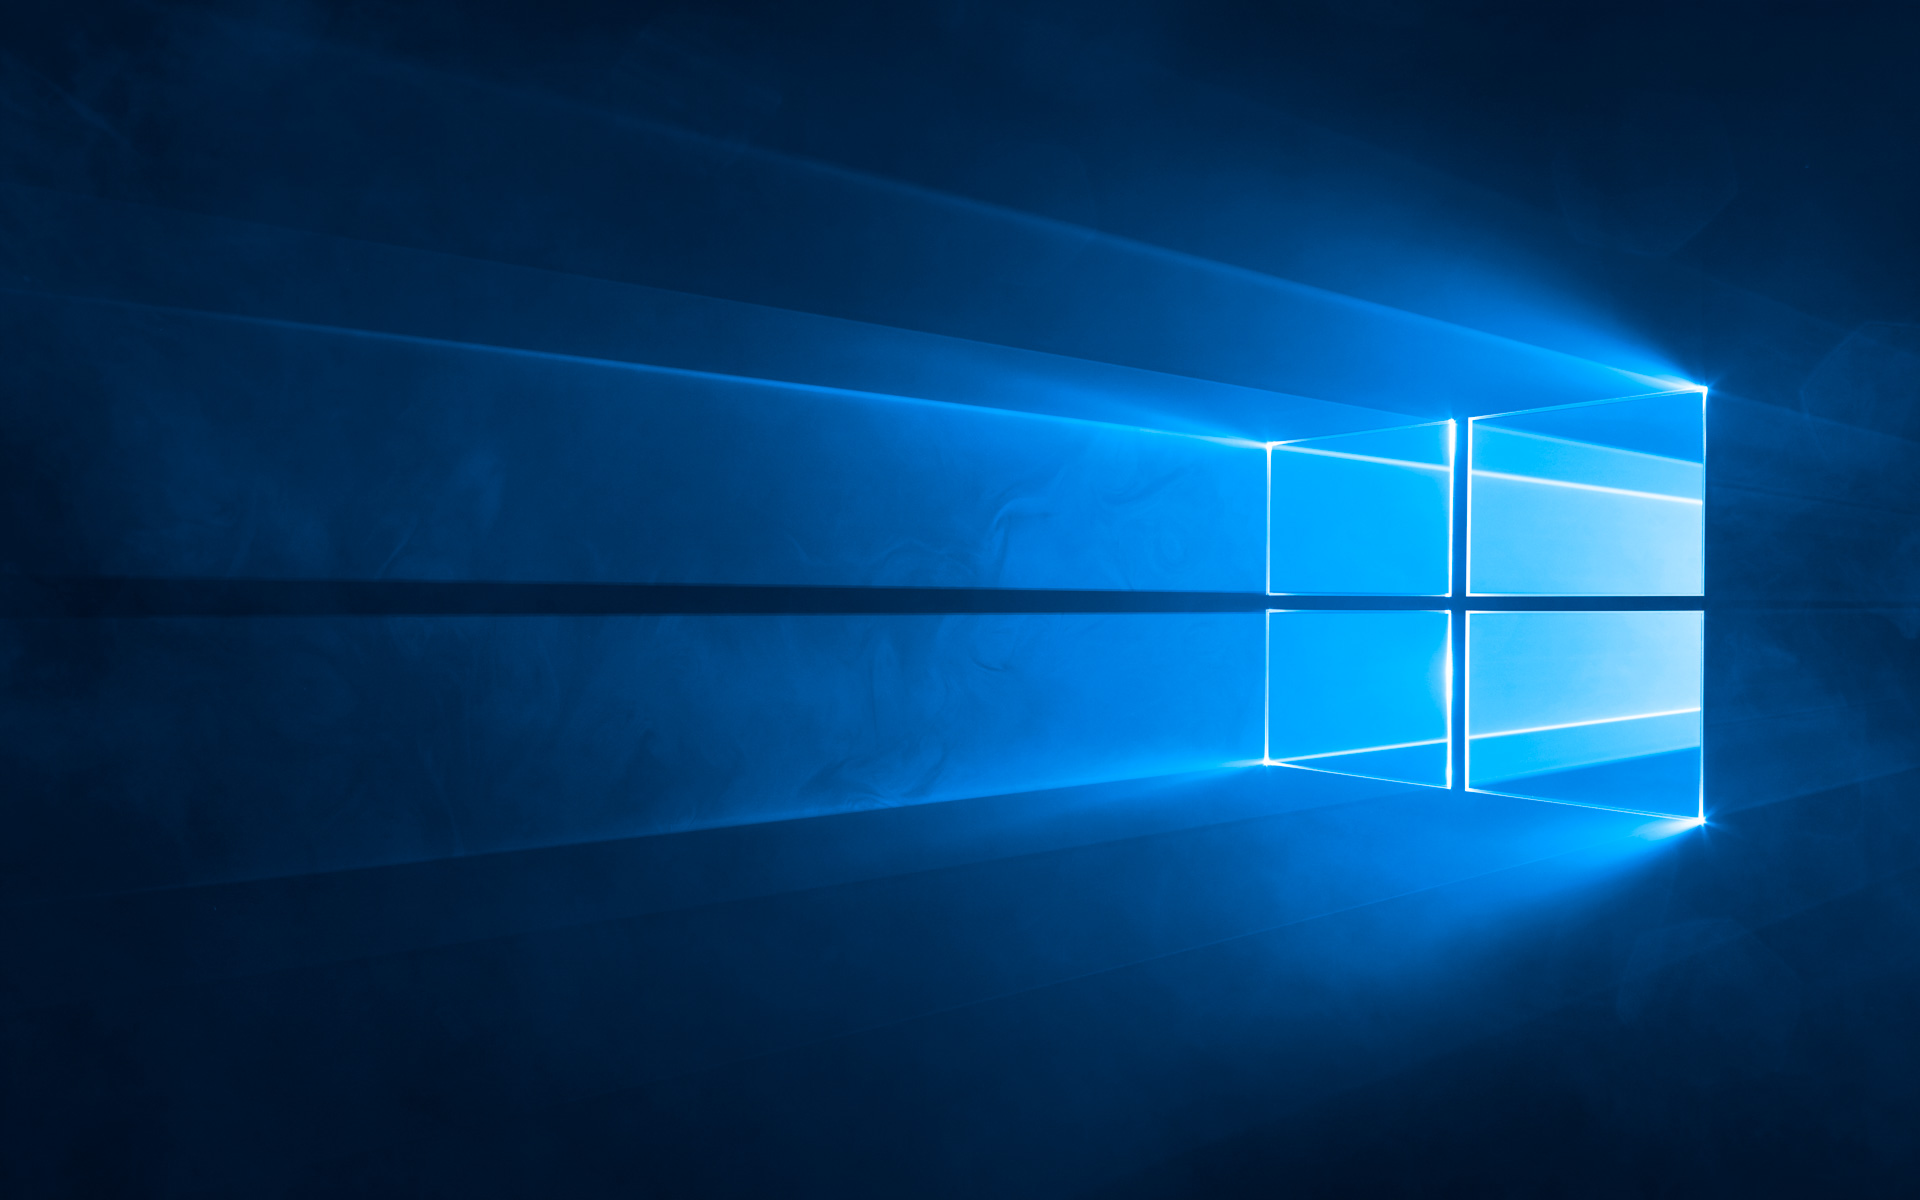 Windows 1803 Update